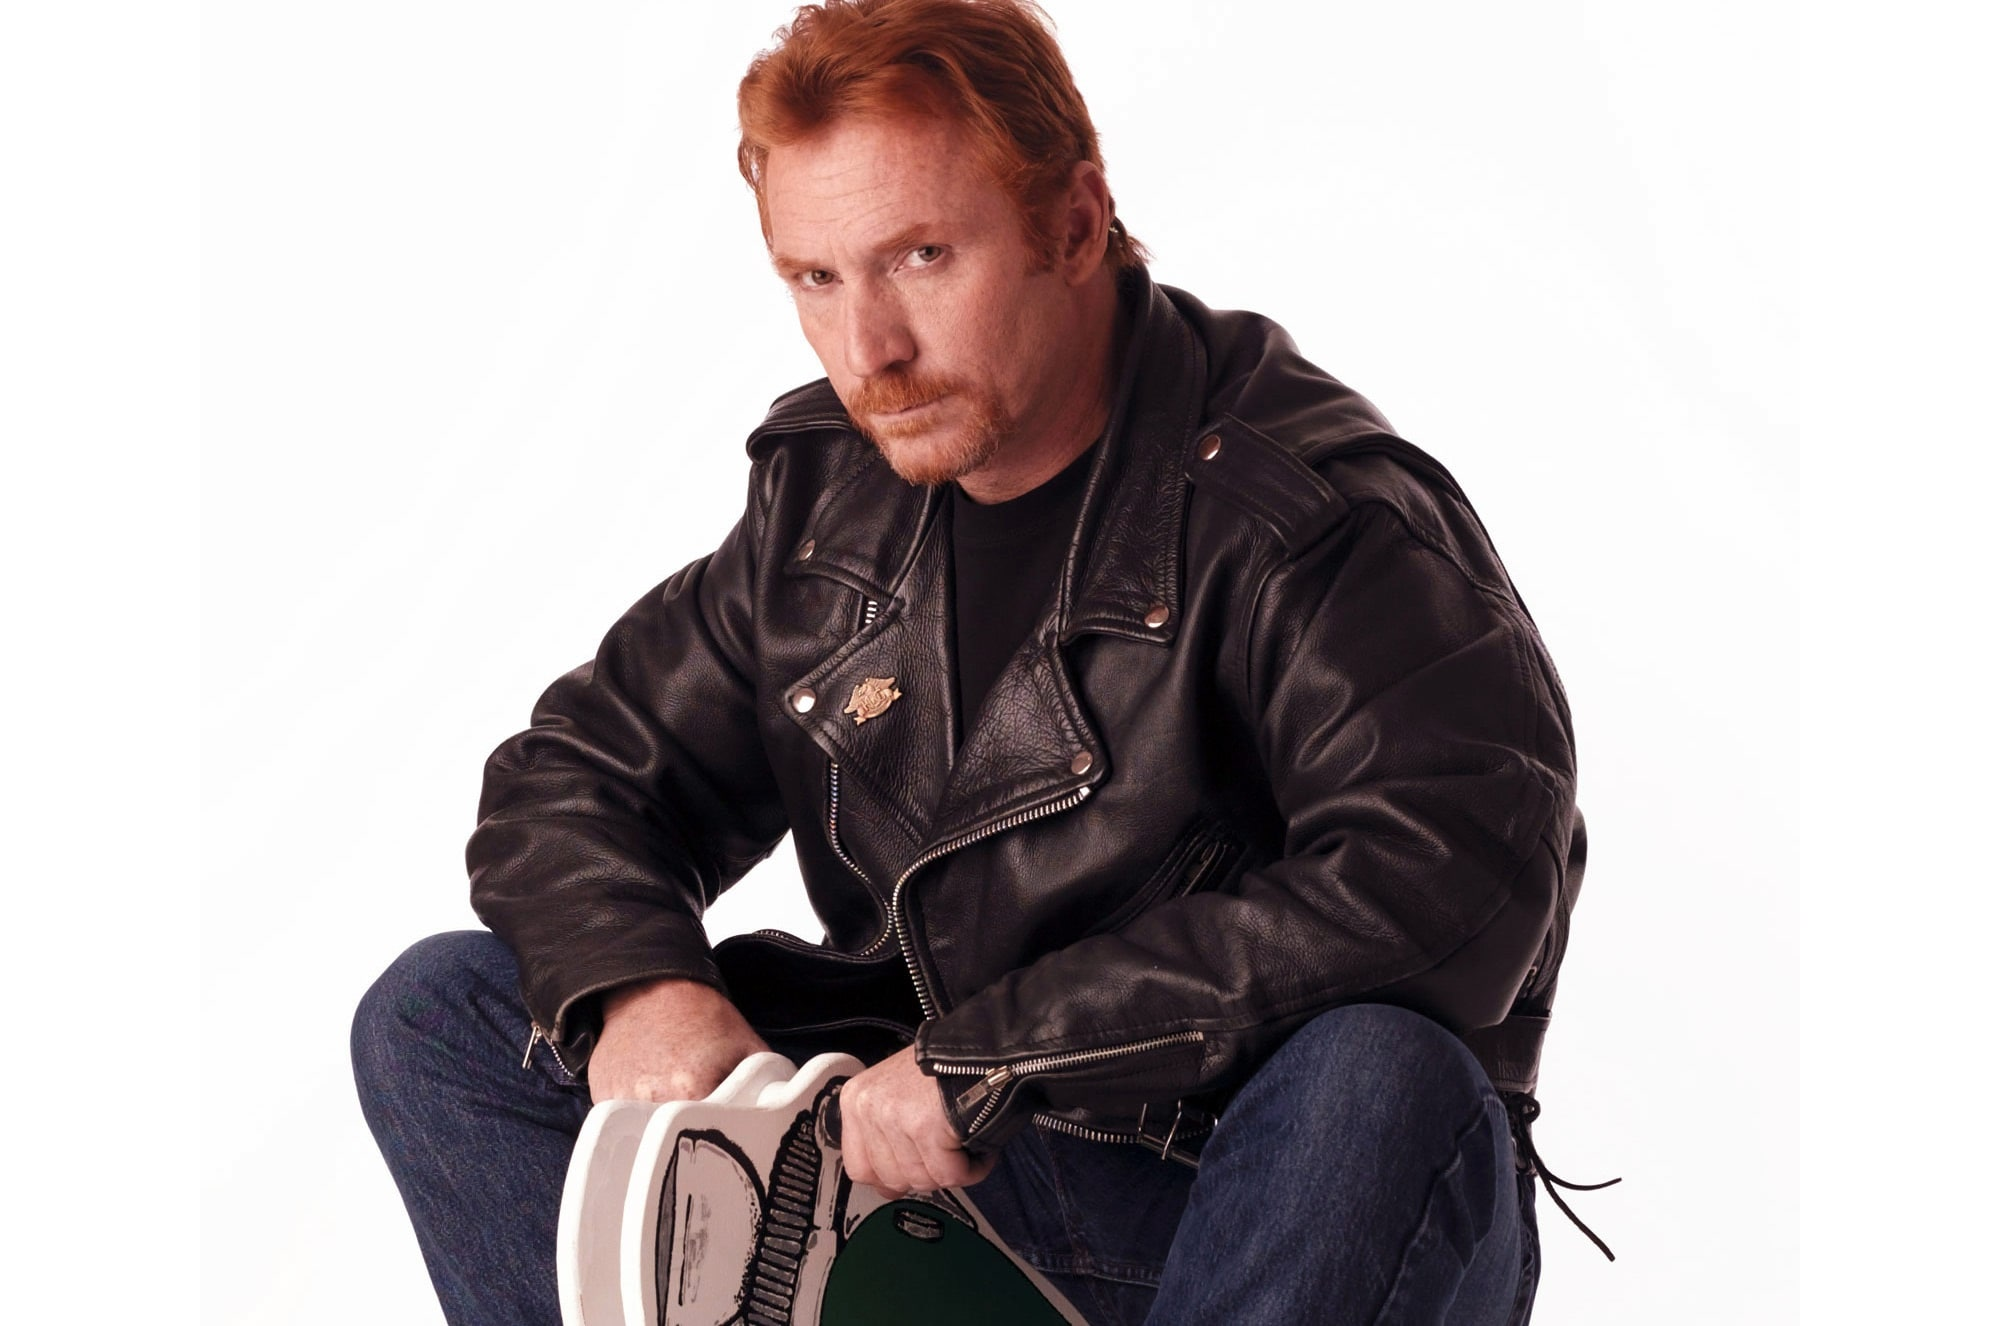 Danny Bonaduce Screensavers